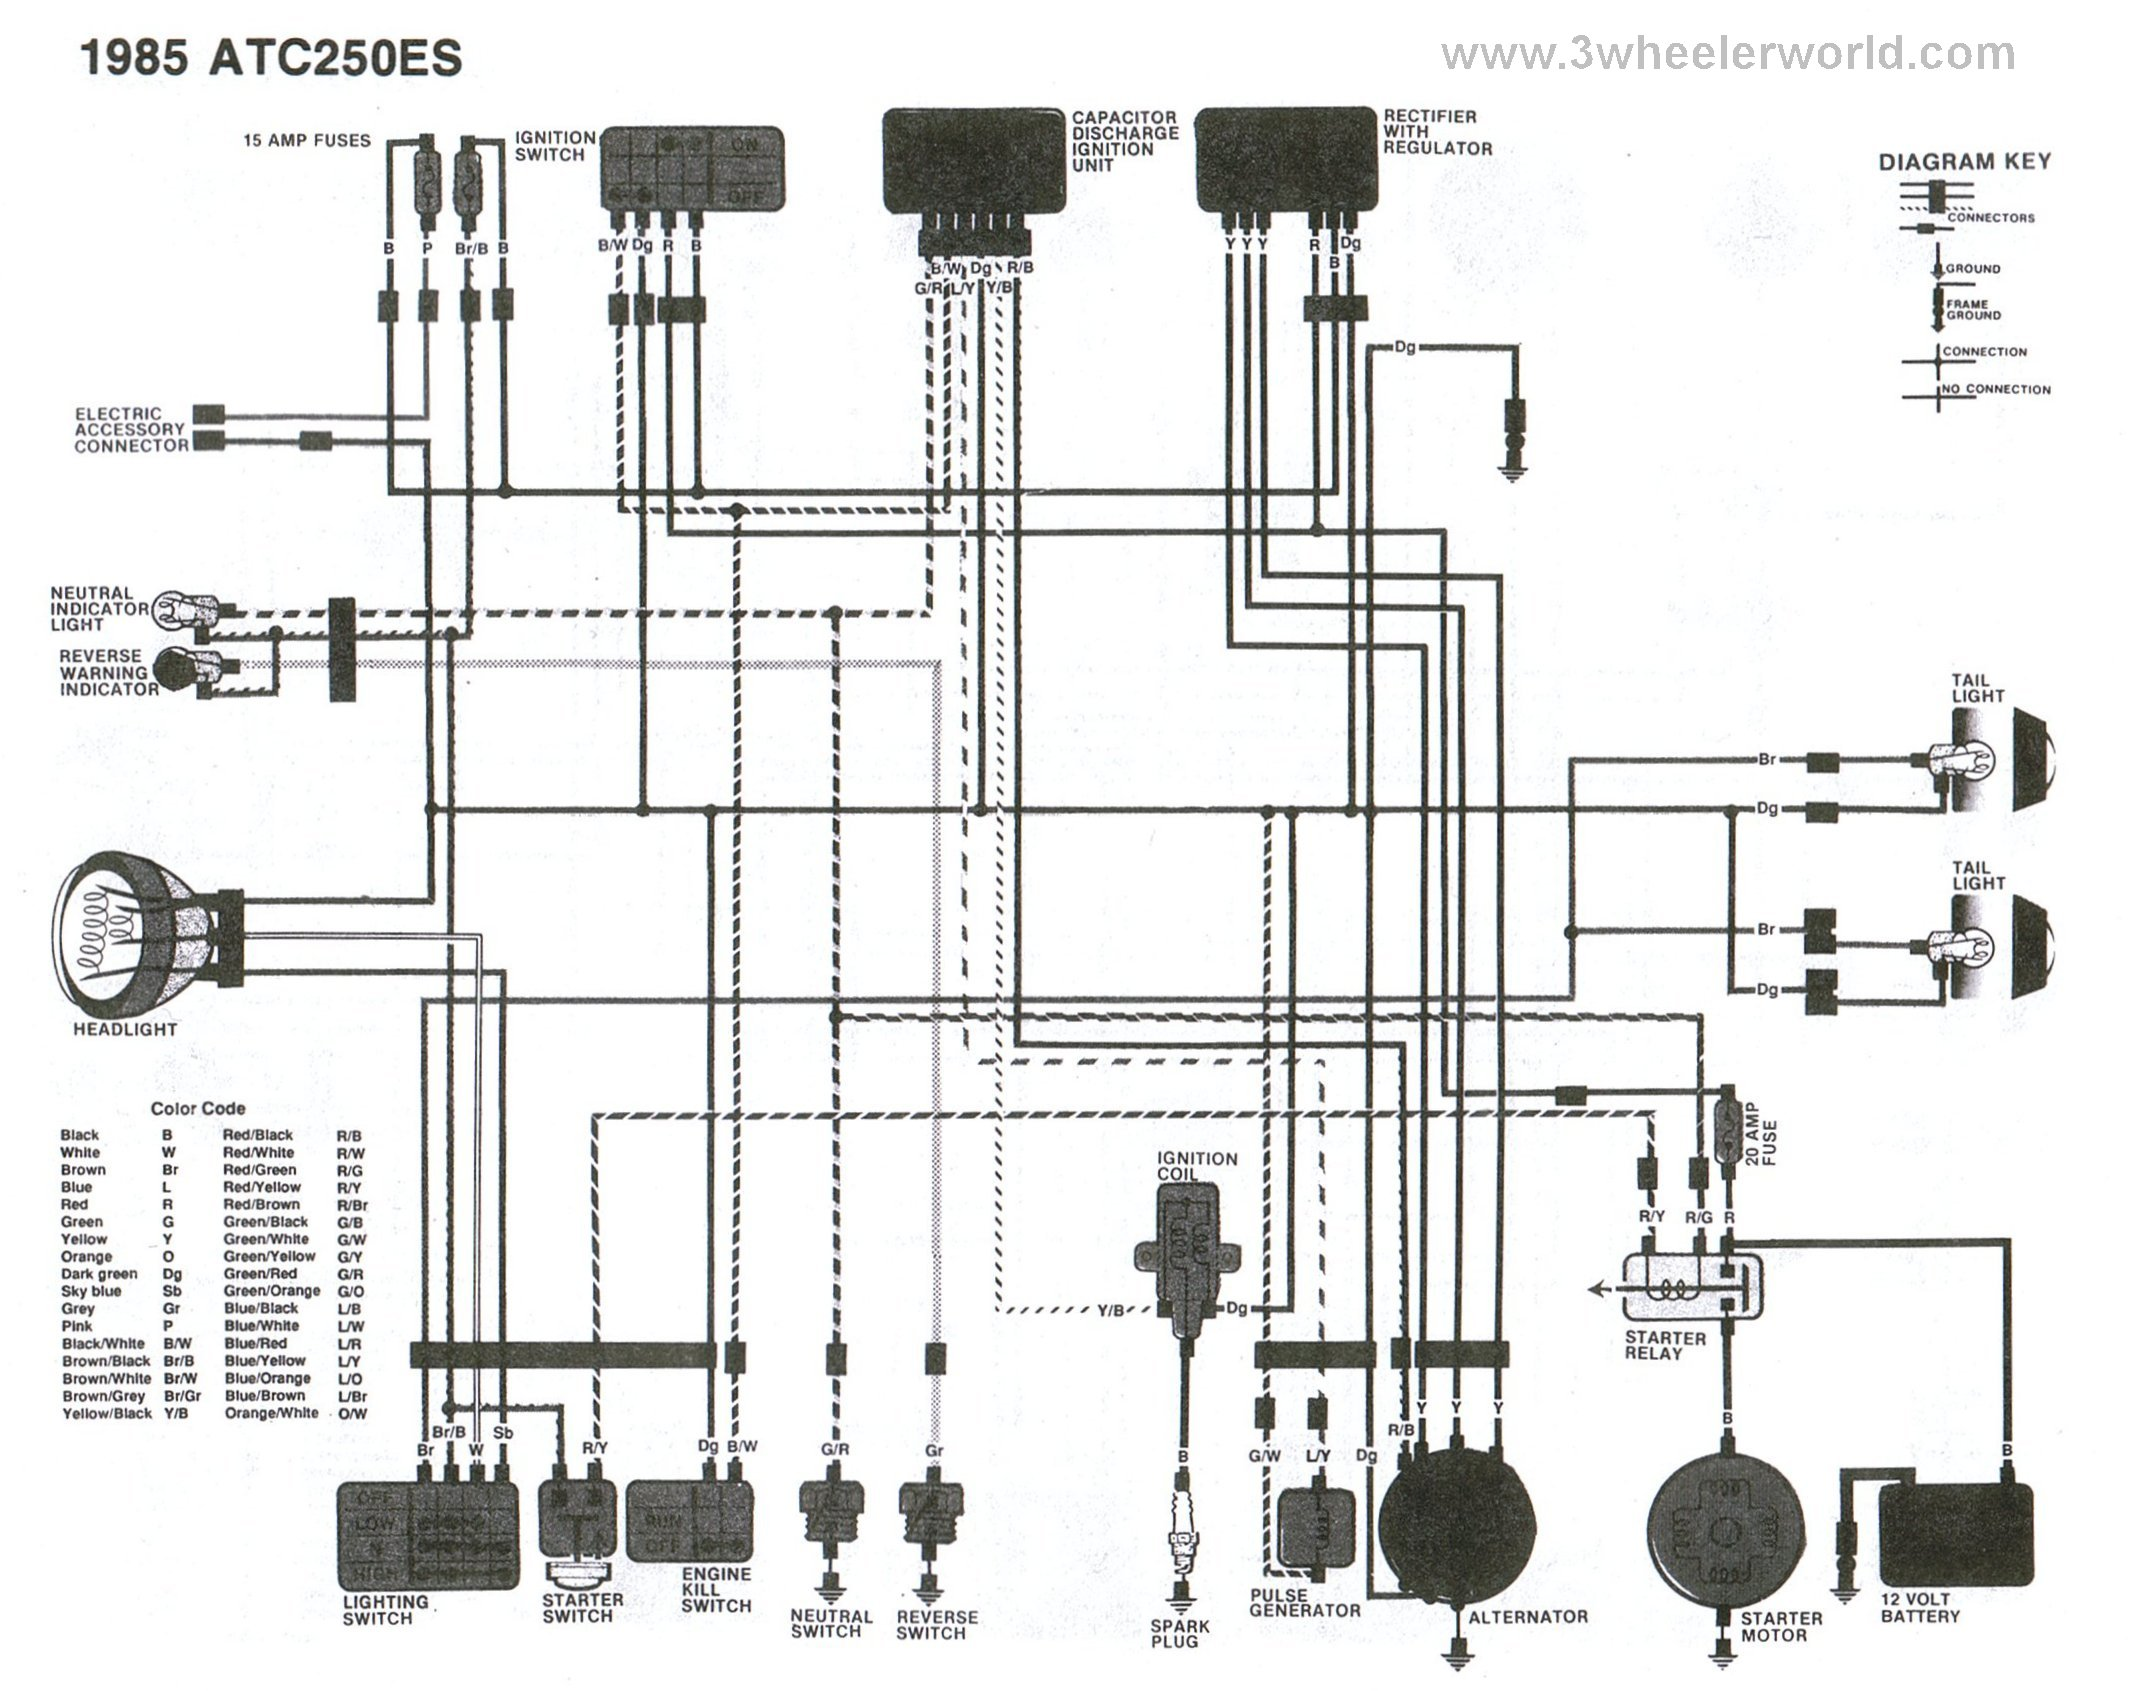 3 WHeeLeR WoRLD-Tech Help Honda Wiring Diagrams on polaris axis, polaris stingray, polaris mrzr-4, polaris trailer, polaris renegade, polaris electric, polaris roadster, polaris edge x, polaris electrical schematics, polaris street legal, polaris diagram, polaris adventure, polaris battery, polaris transmission, polaris raptor, polaris cycles, polaris truck, polaris ranger schematics,